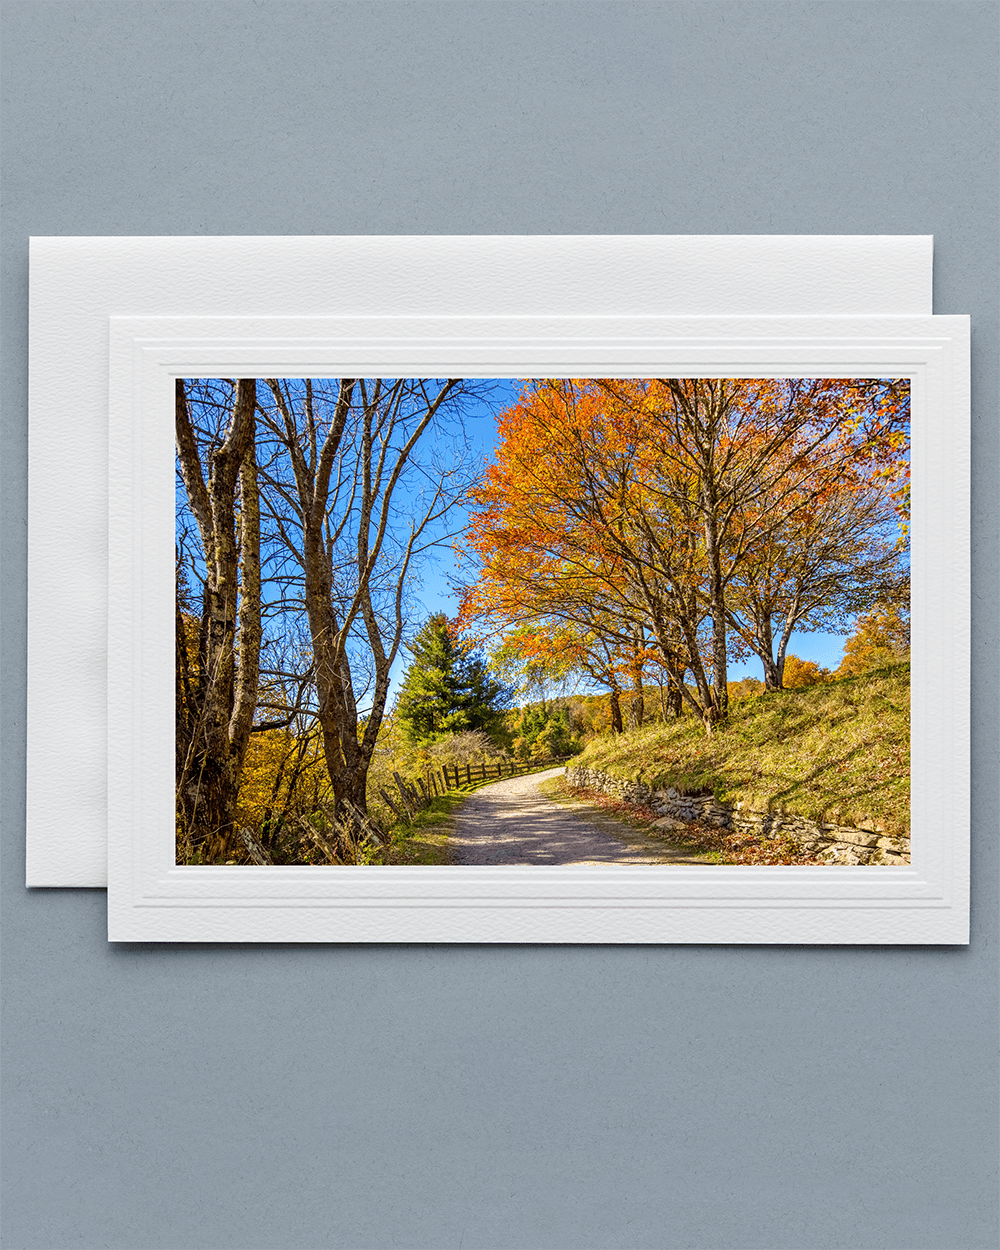 Send a lovely Greeting Card with a real photograph of Moses H Cone Memorial Park - All Greeting Cards are handmade by us in the U.S.A.